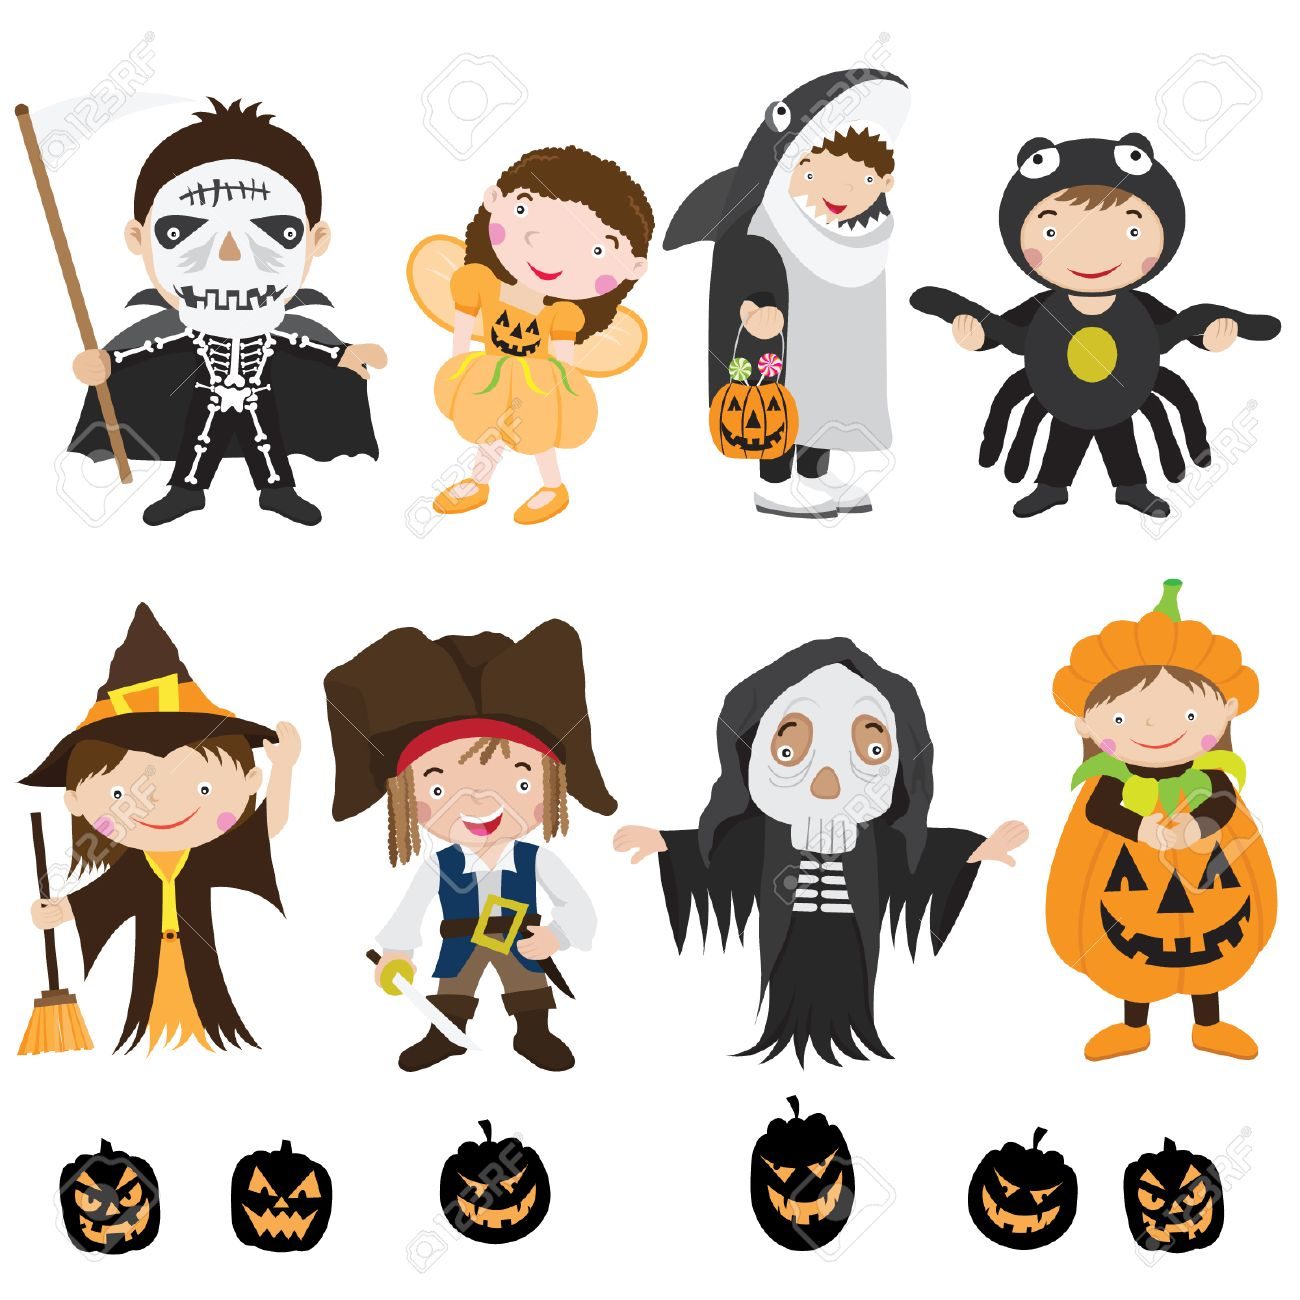 Cute Halloween Characters And Costume Royalty Free Cliparts ...